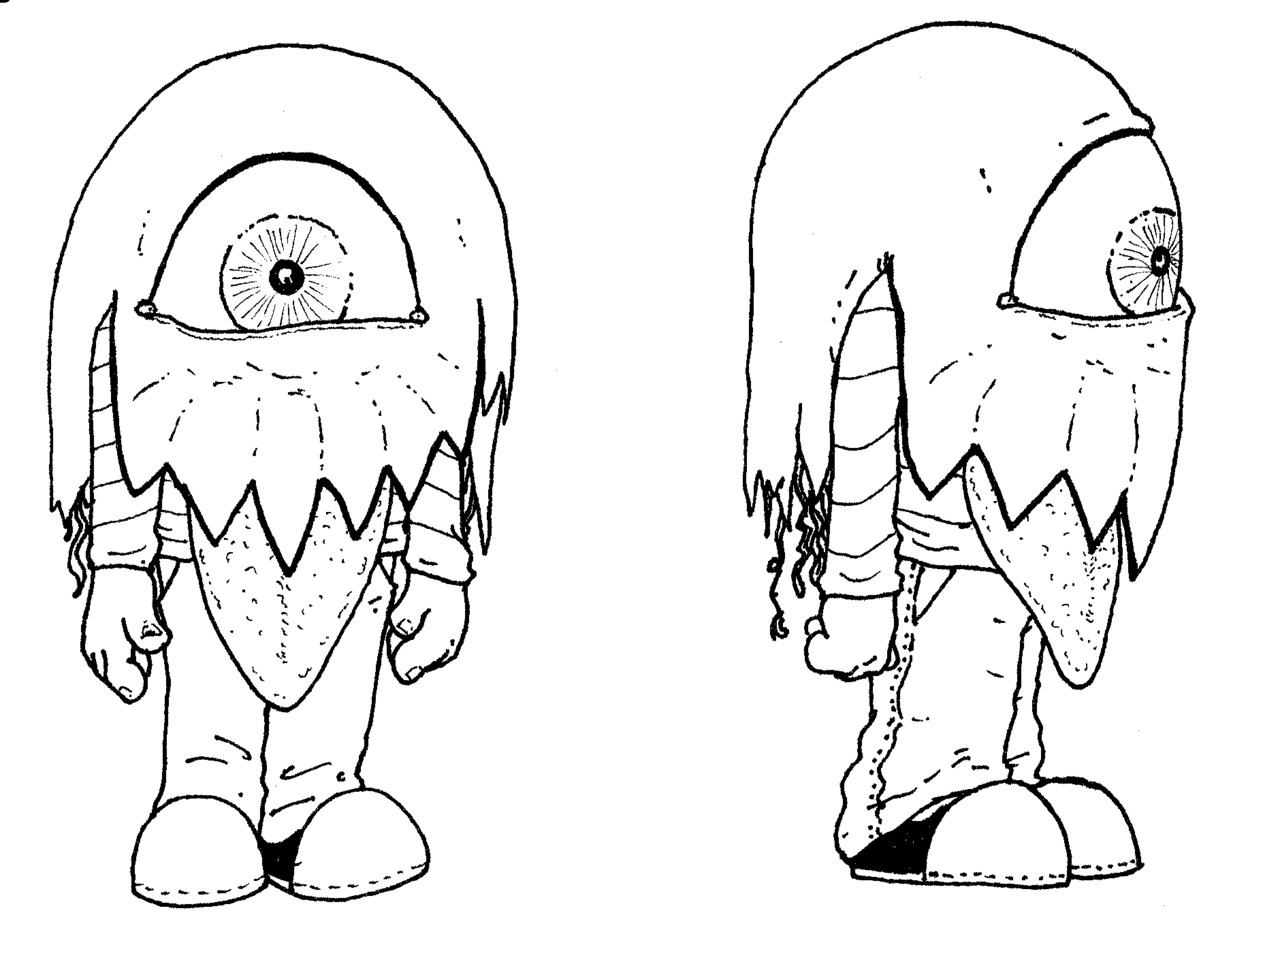 Monster sketch for children's book concept #1. Original art and writing © Jasey Crowl 2012